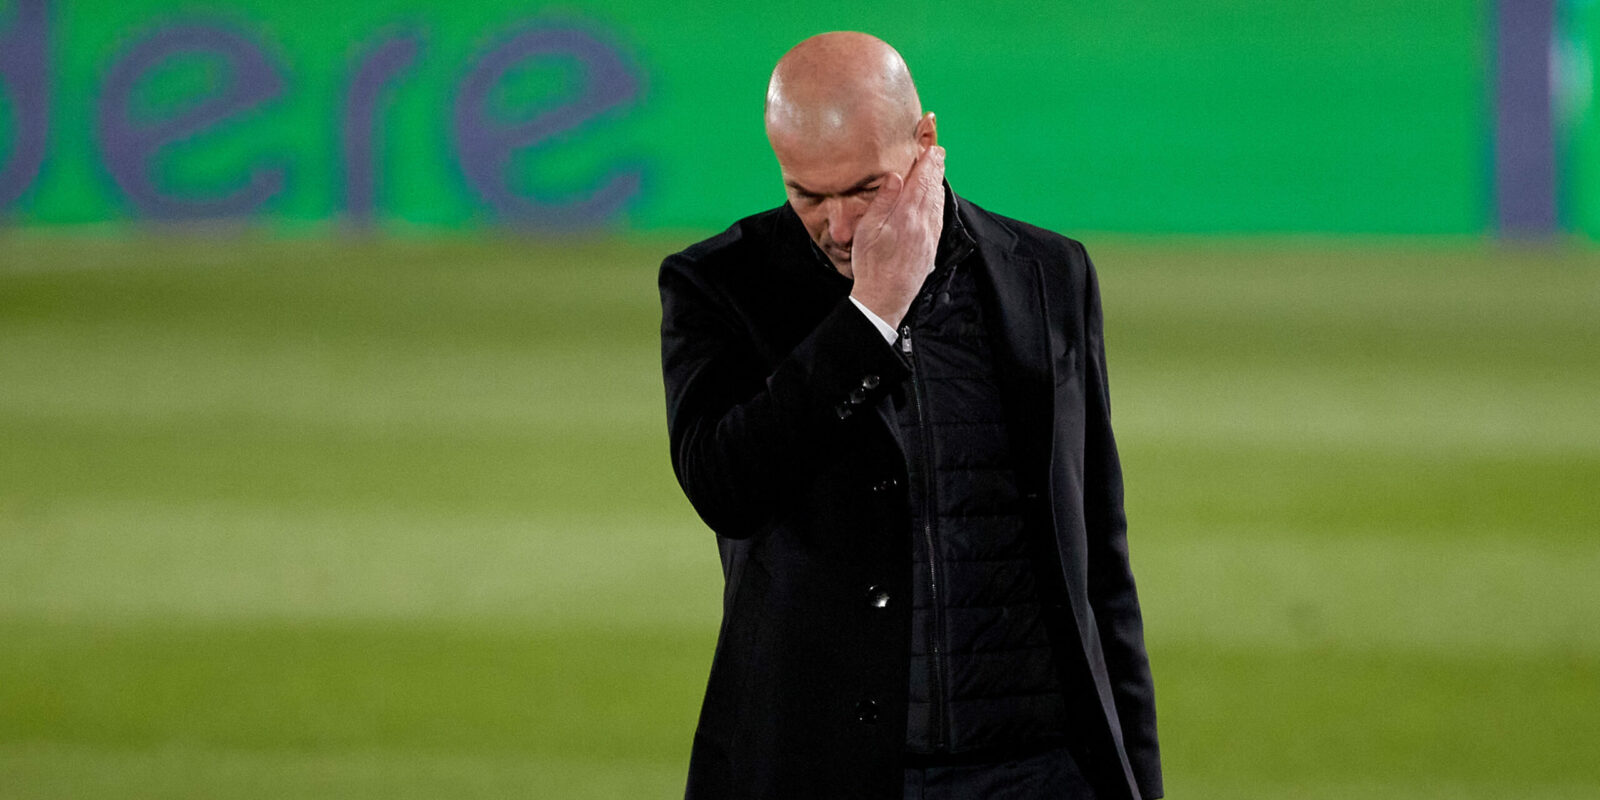 01 March 2021, Spain, Madrid: Real Madrid coach Zinedine Zidane is pictured during the Spanish Primera Division soccer match between between Real Madrid and Real Sociedad at Alfredo Di Stefano stadium. Photo: Indira/DAX via ZUMA Wire/dpa 1/3/2021 ONLY FOR USE IN SPAIN